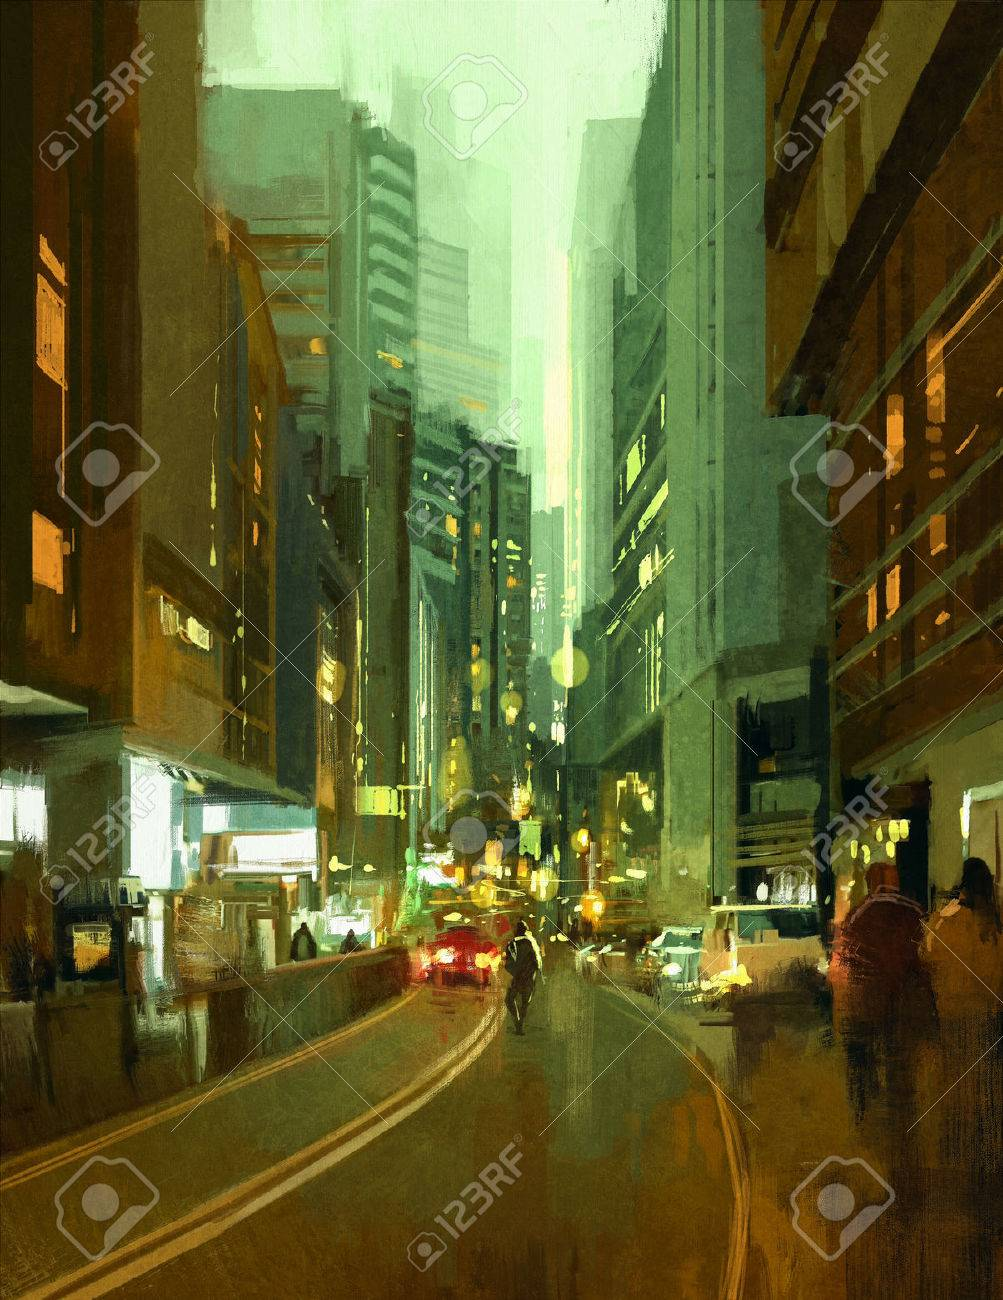 painting of street in modern urban city at evening Stock Photo - 43033394